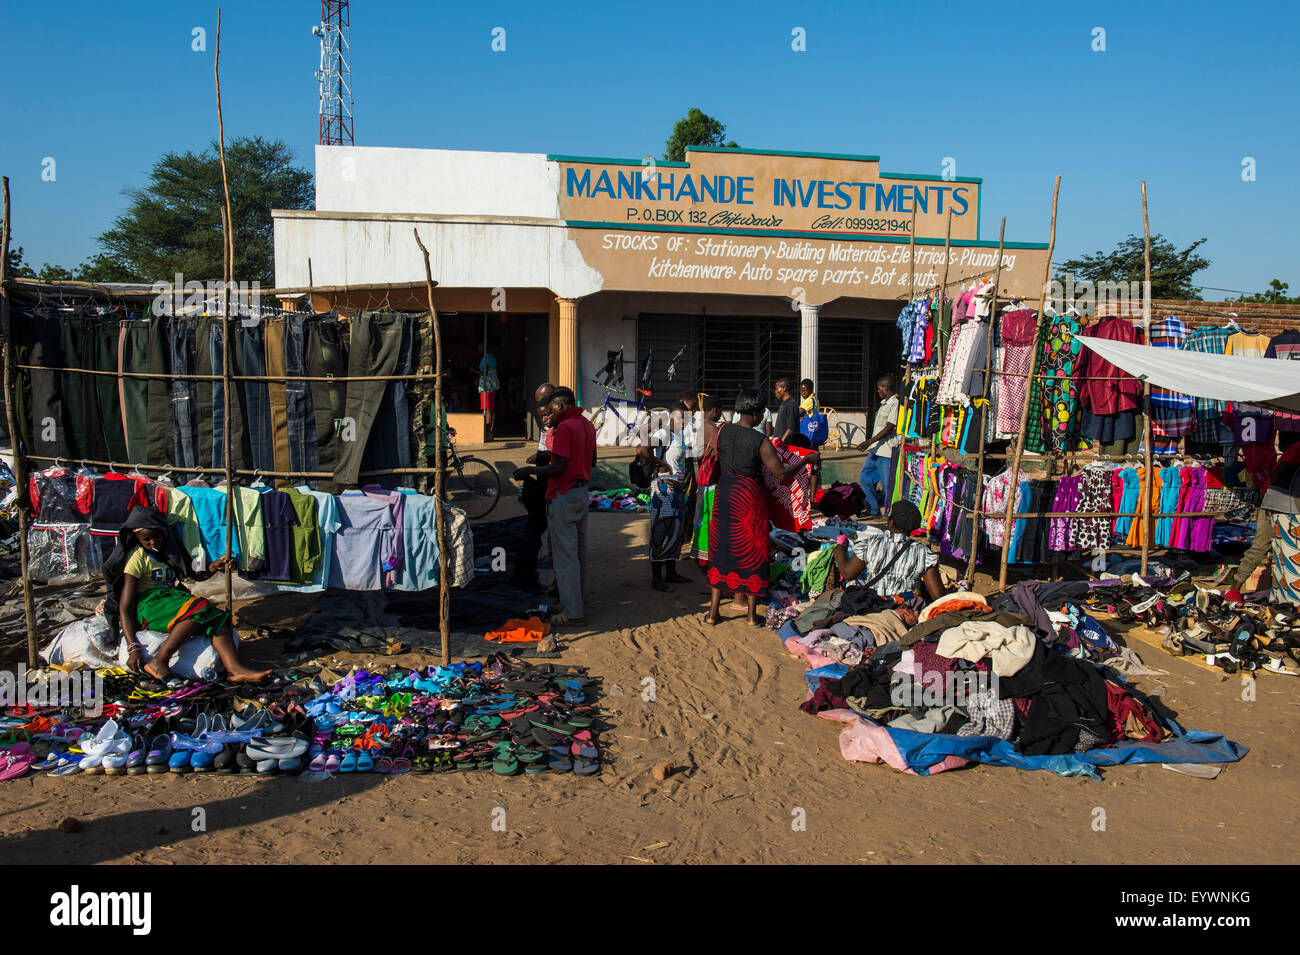 Street market in central, Malawi, Africa - Stock Image